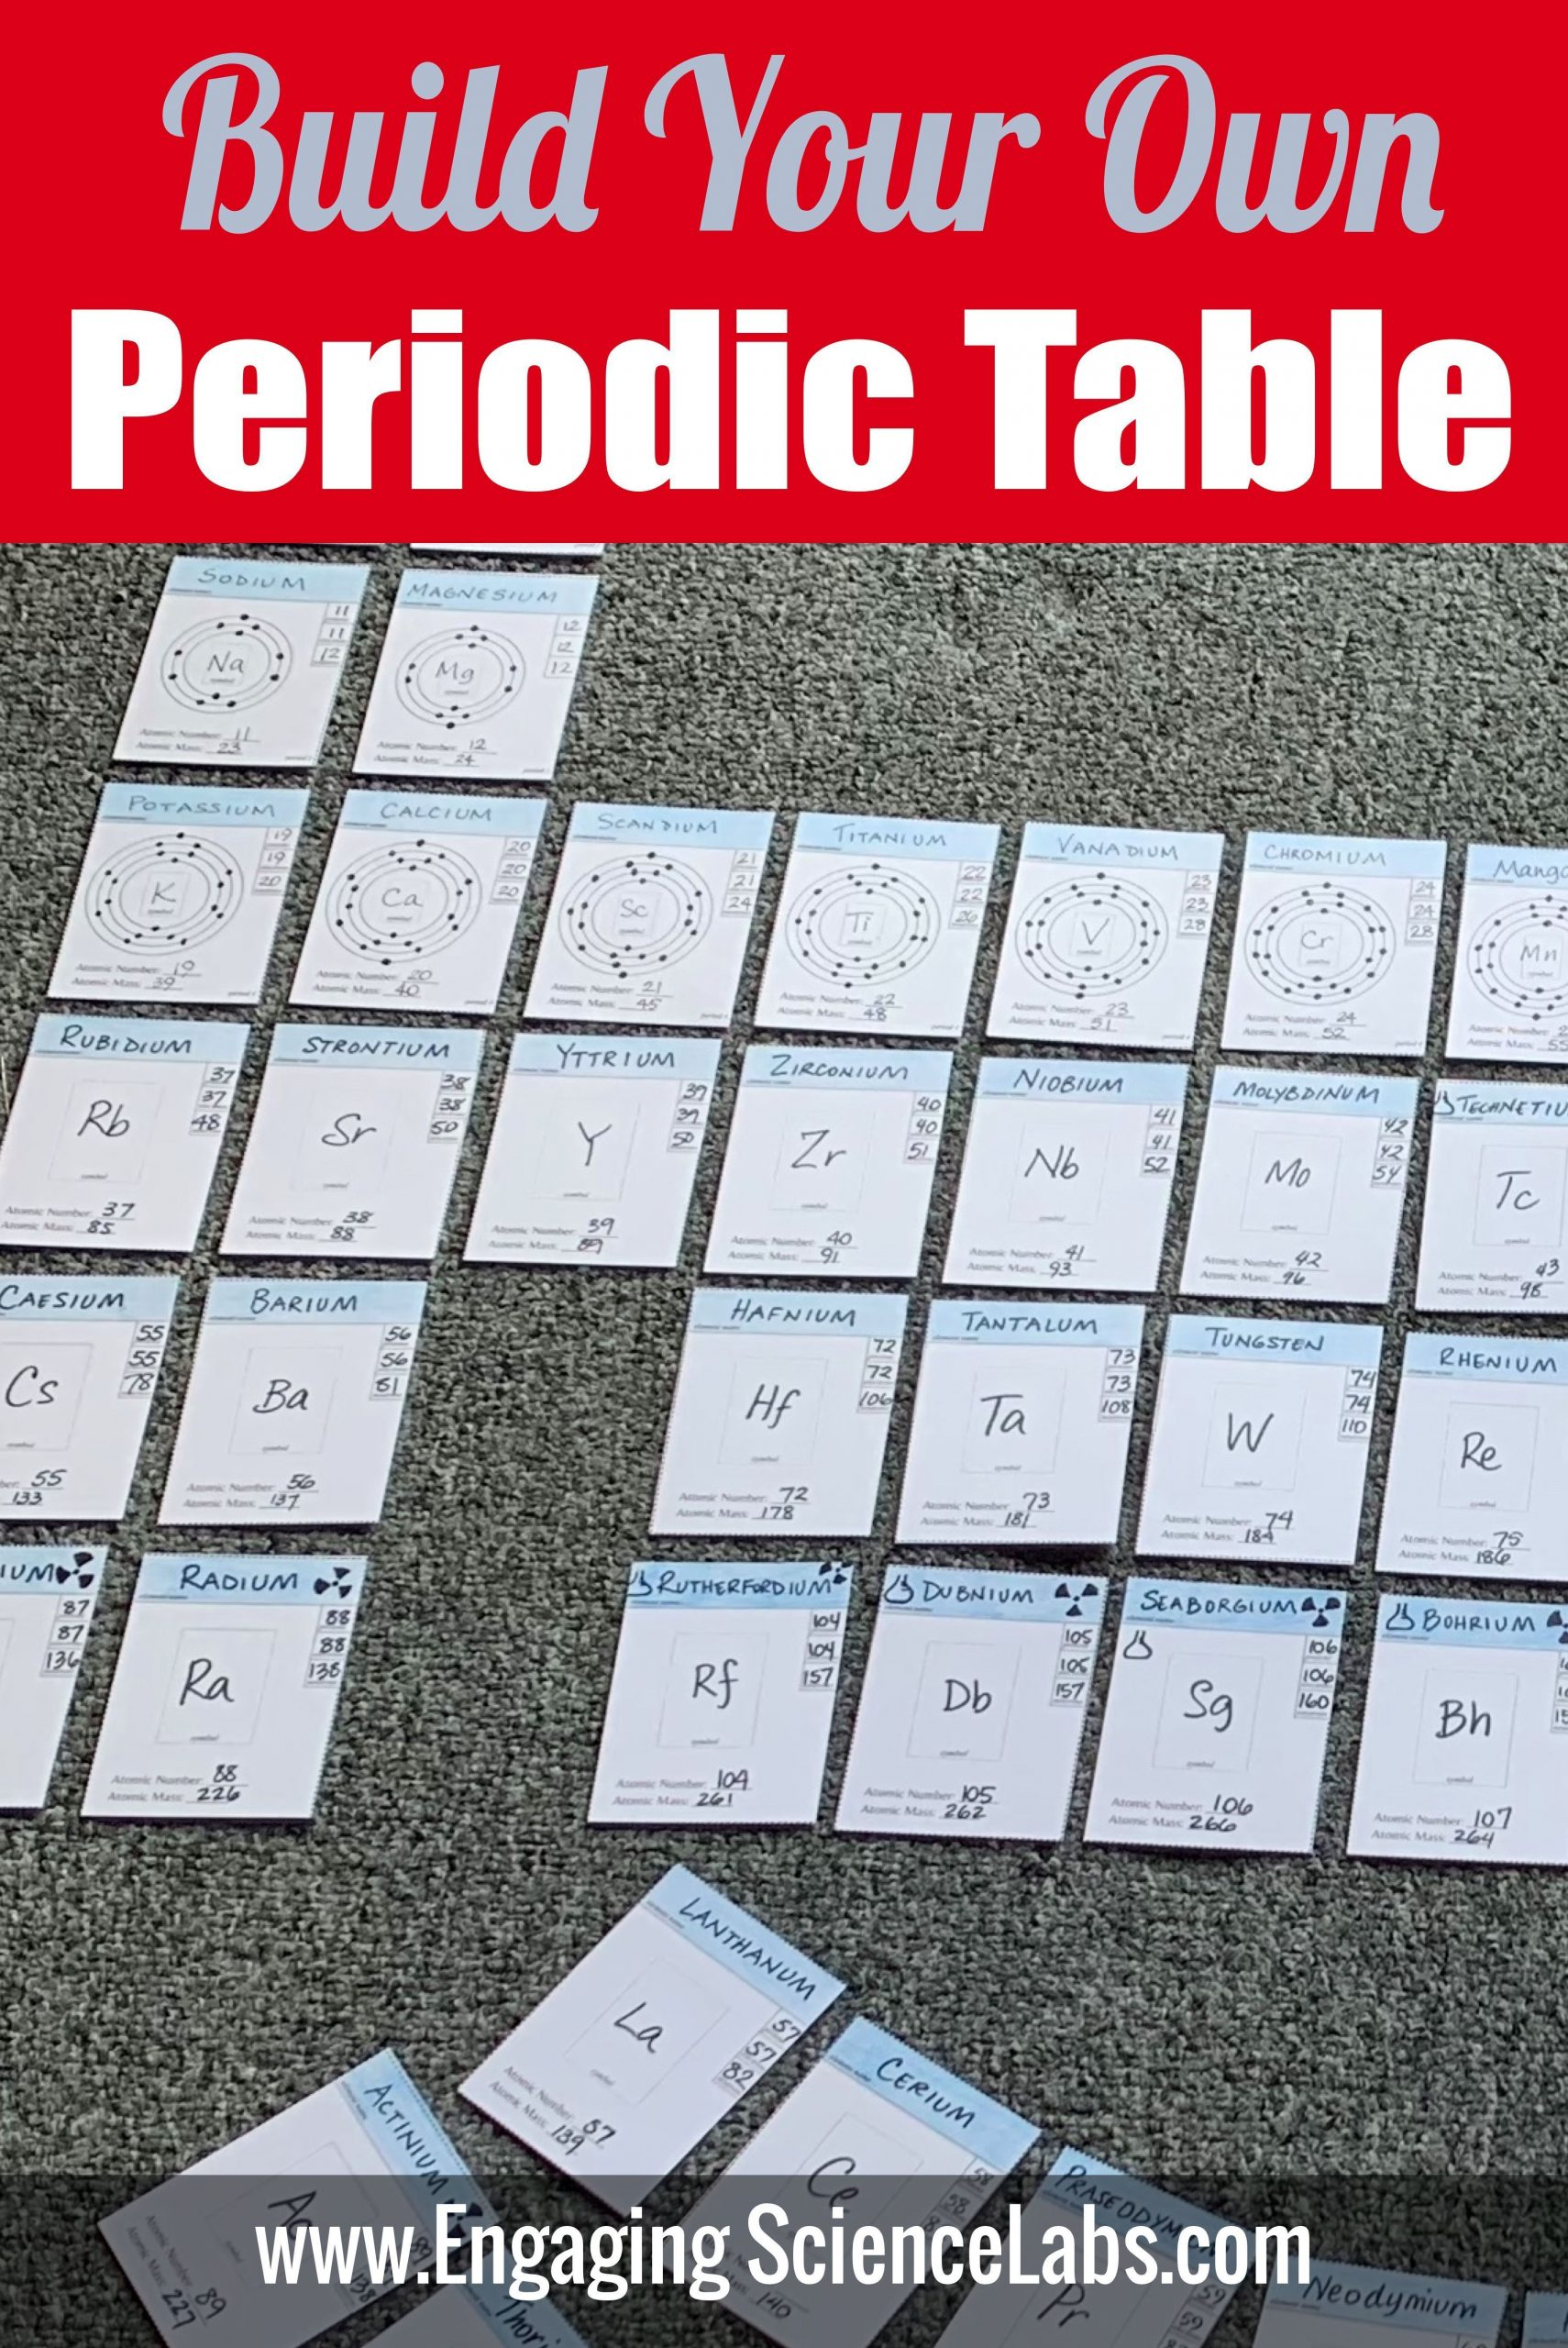 Building the Periodic Table Worksheet Pin On Engaging Science Labs Curriculum